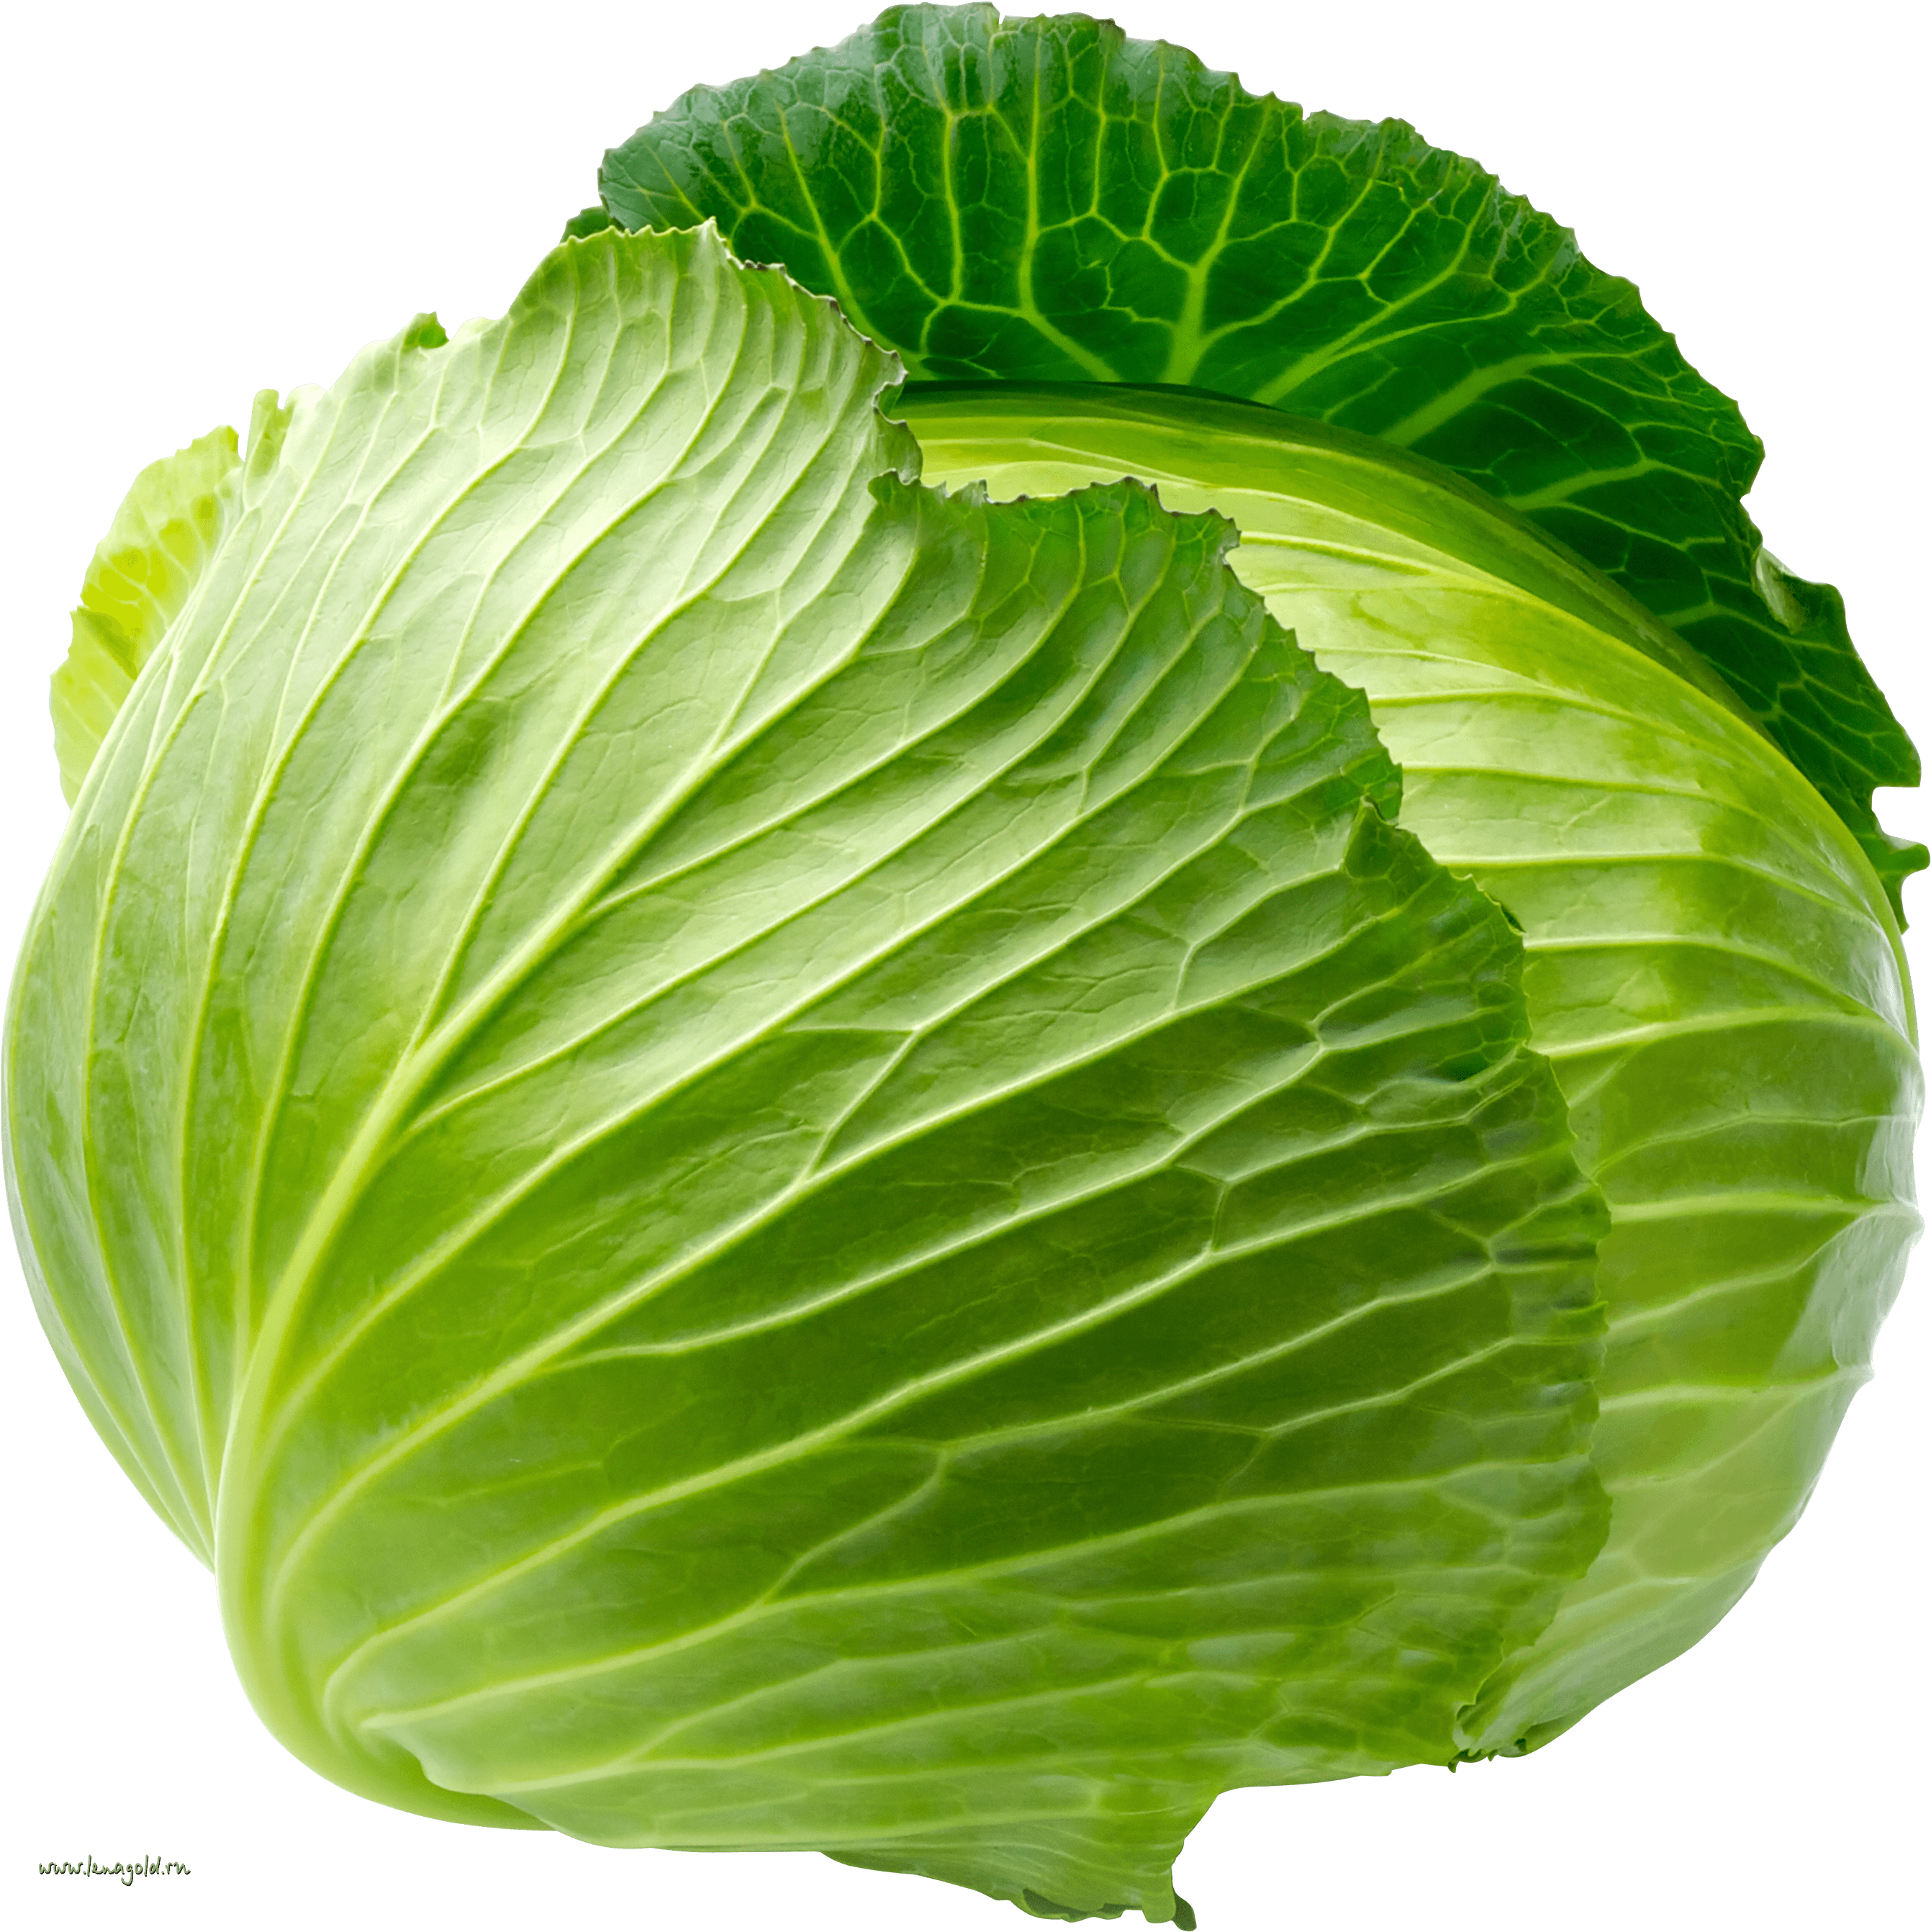 Download Cabbage Png Image HQ PNG Image.